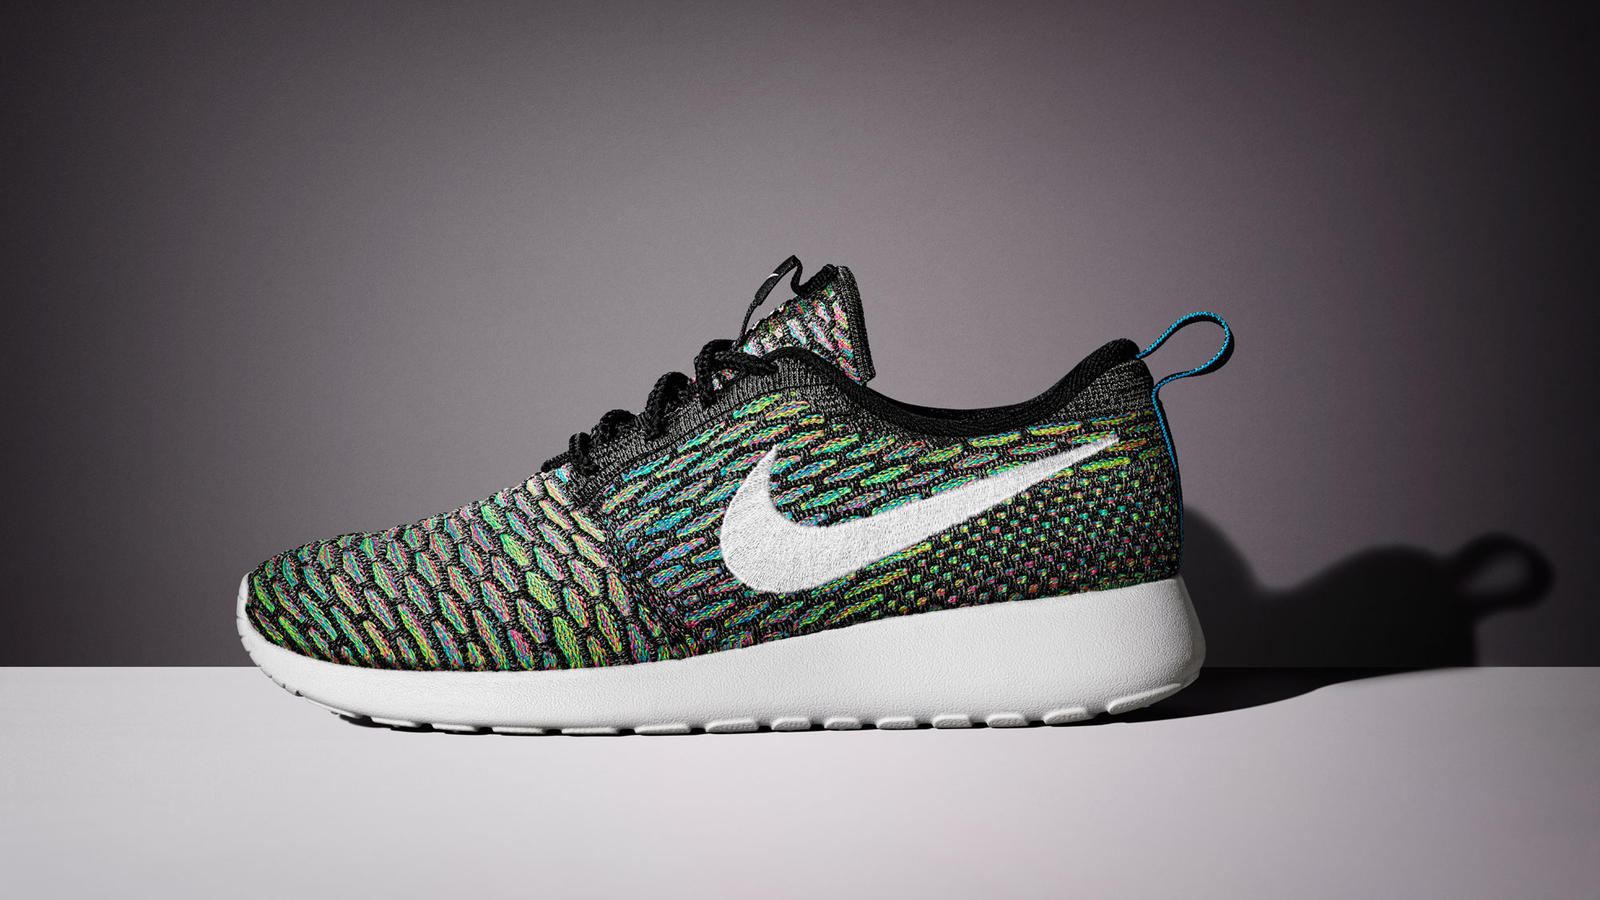 Sp15_NSW_Roshe_Flyknit_W_Grey_White_06_original_porto (15)